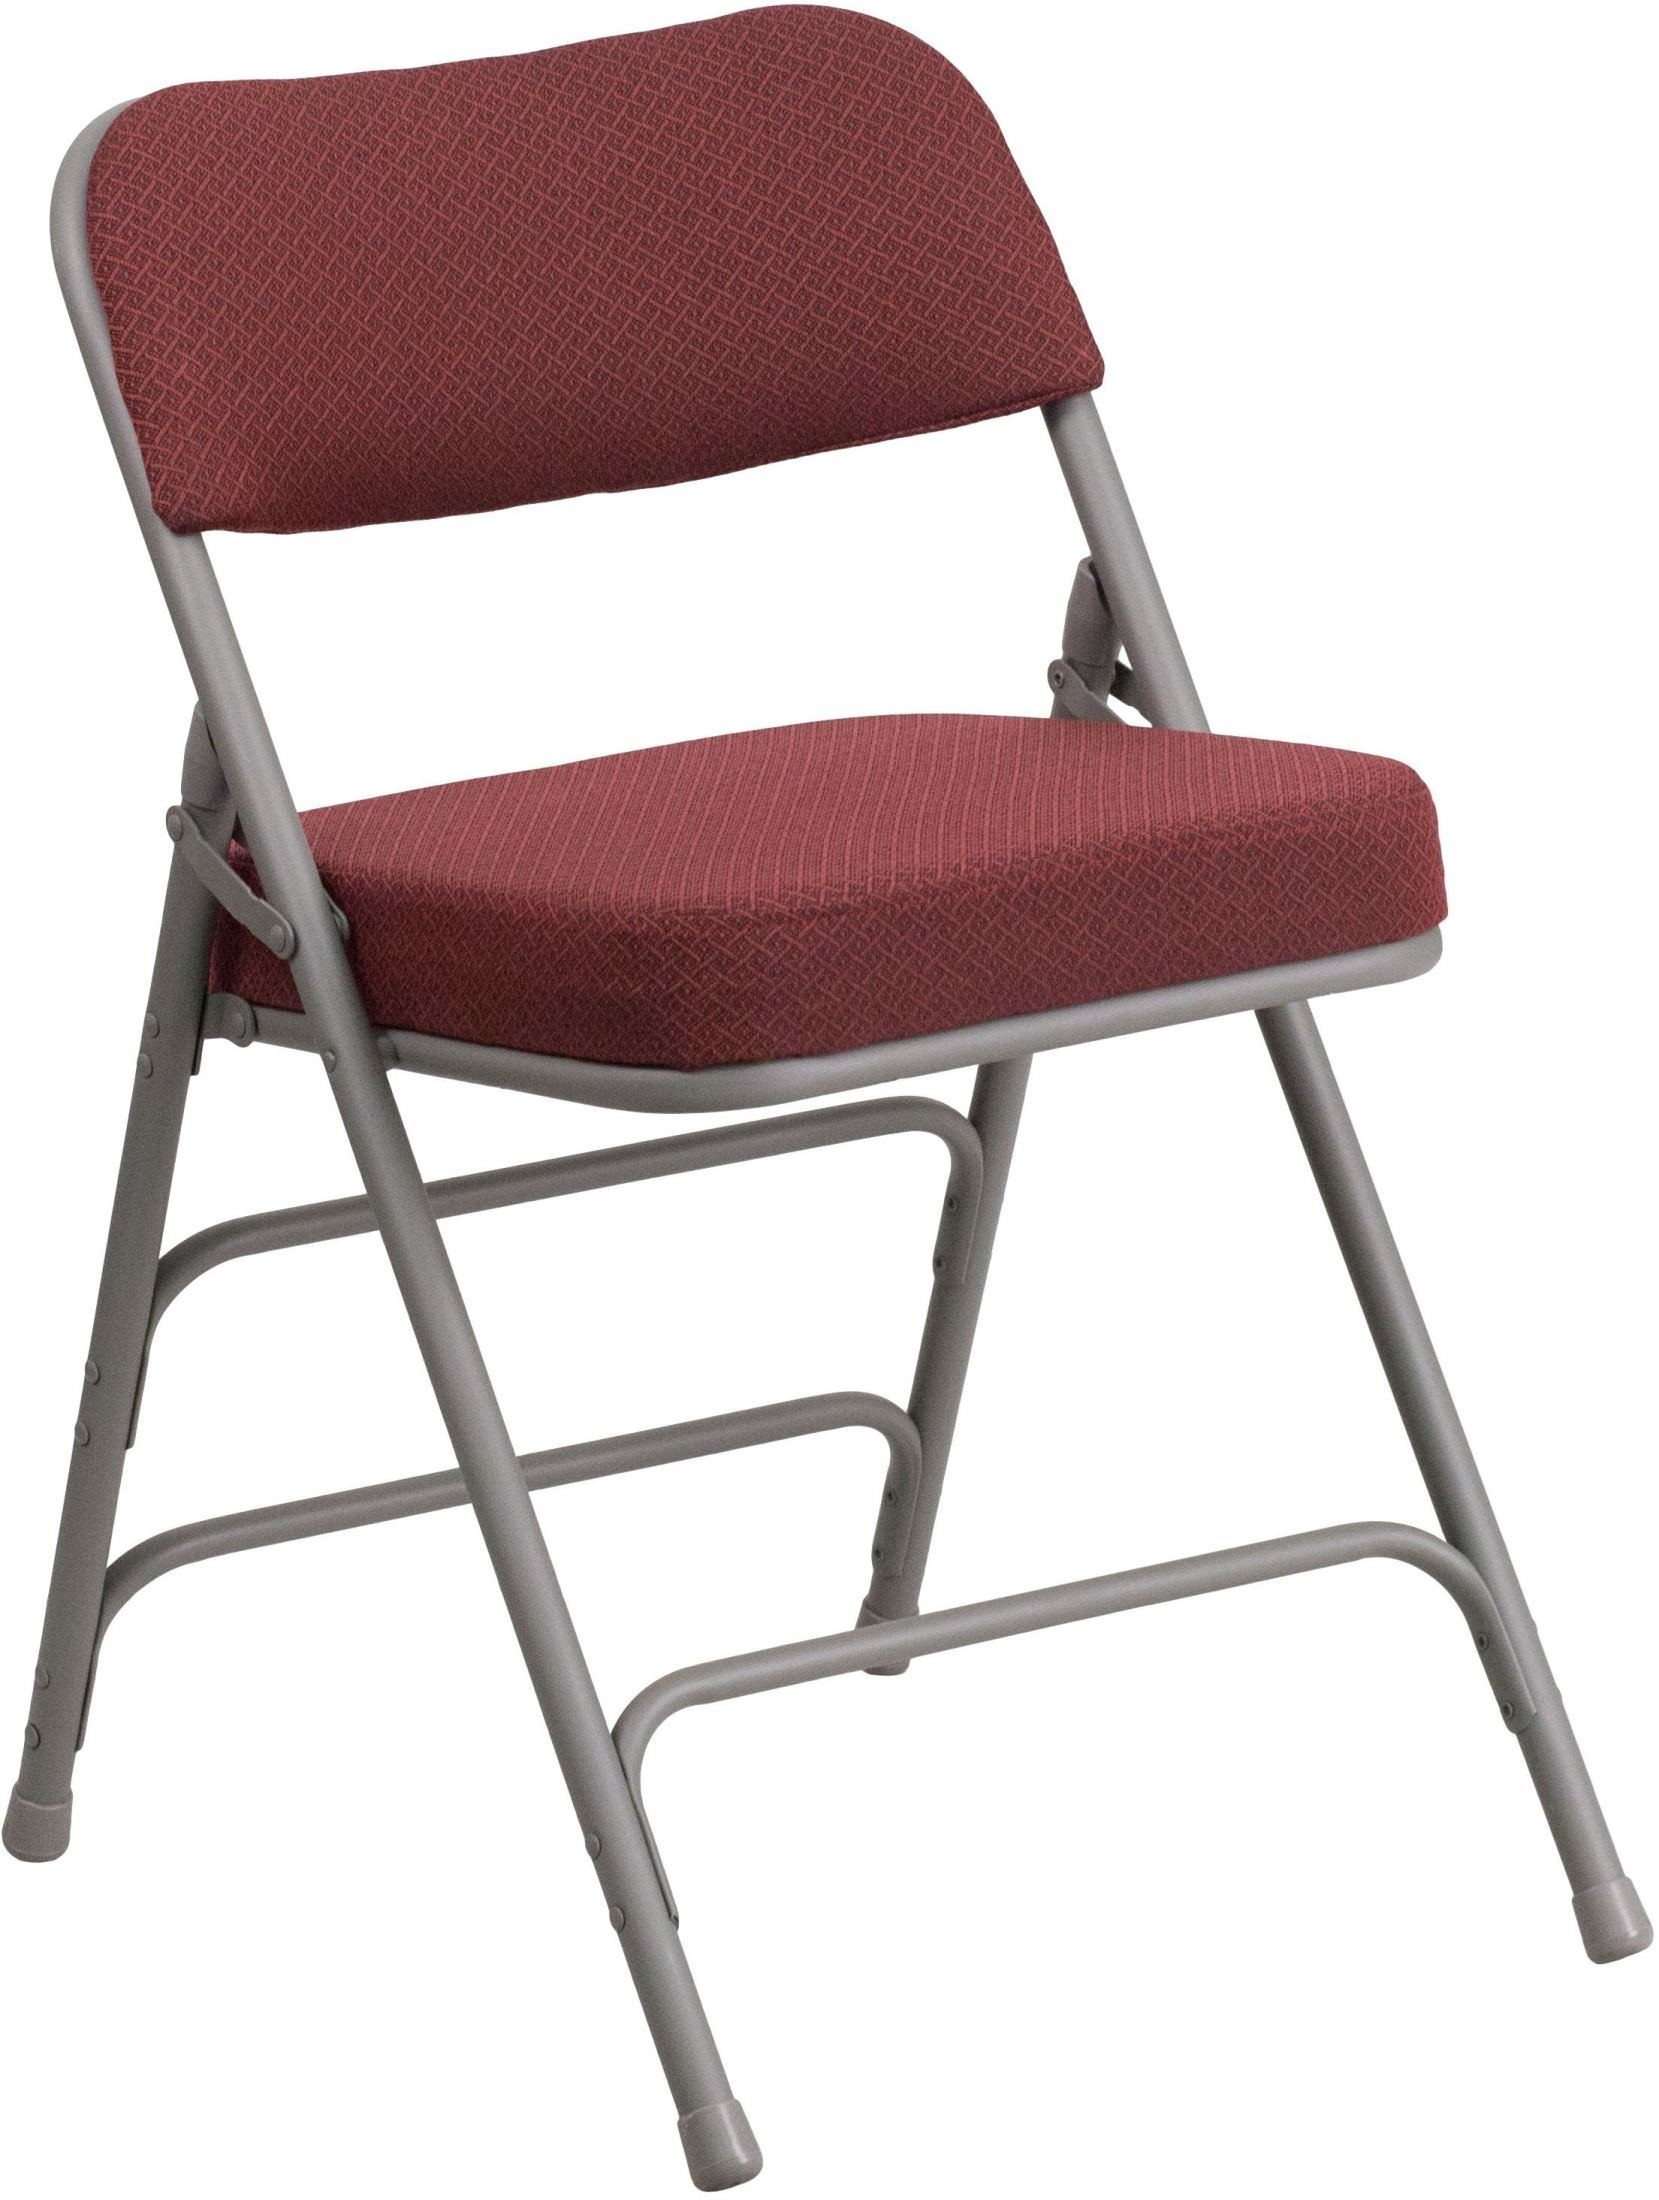 Fabric Folding Chairs Hercules Series Premium Burgundy Fabric Upholstered Metal